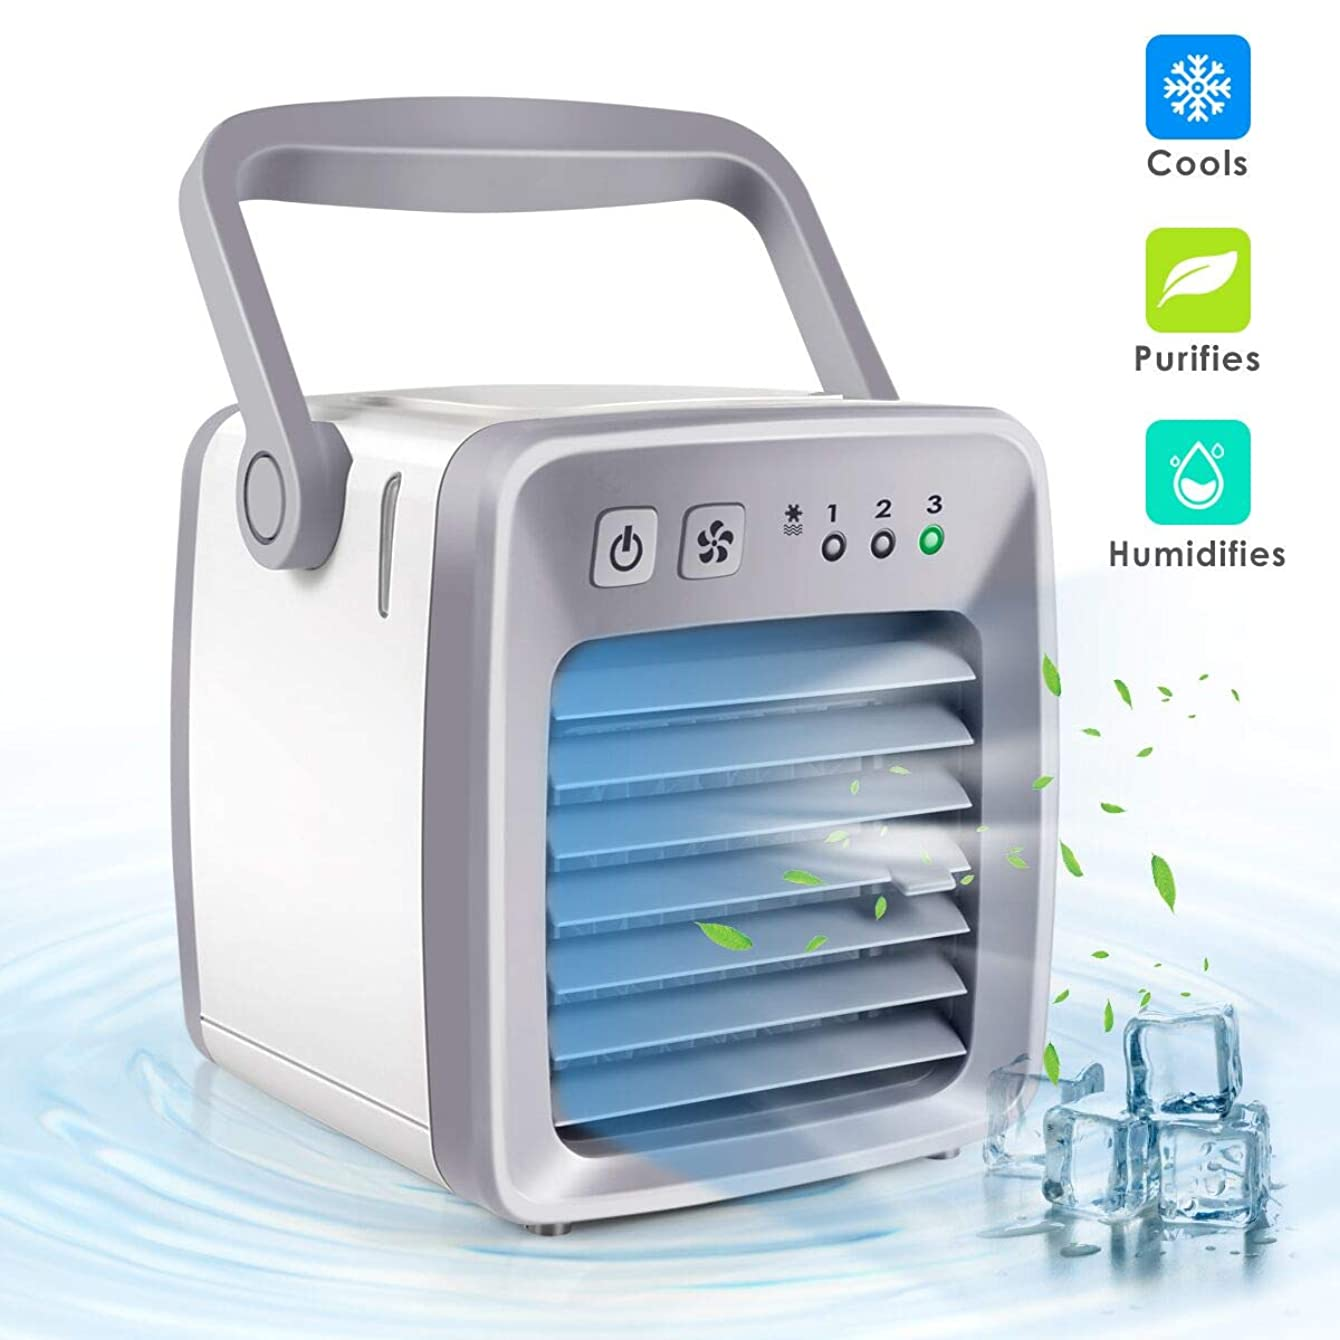 Air Cooler, Mini Portable Air Conditioner Fan Noiseless Evaporative Air Humidifier, Personal Space Air Conditioner, Mini Cooler,3 Gear Speed, Office Cooler Humidifier & Purifier